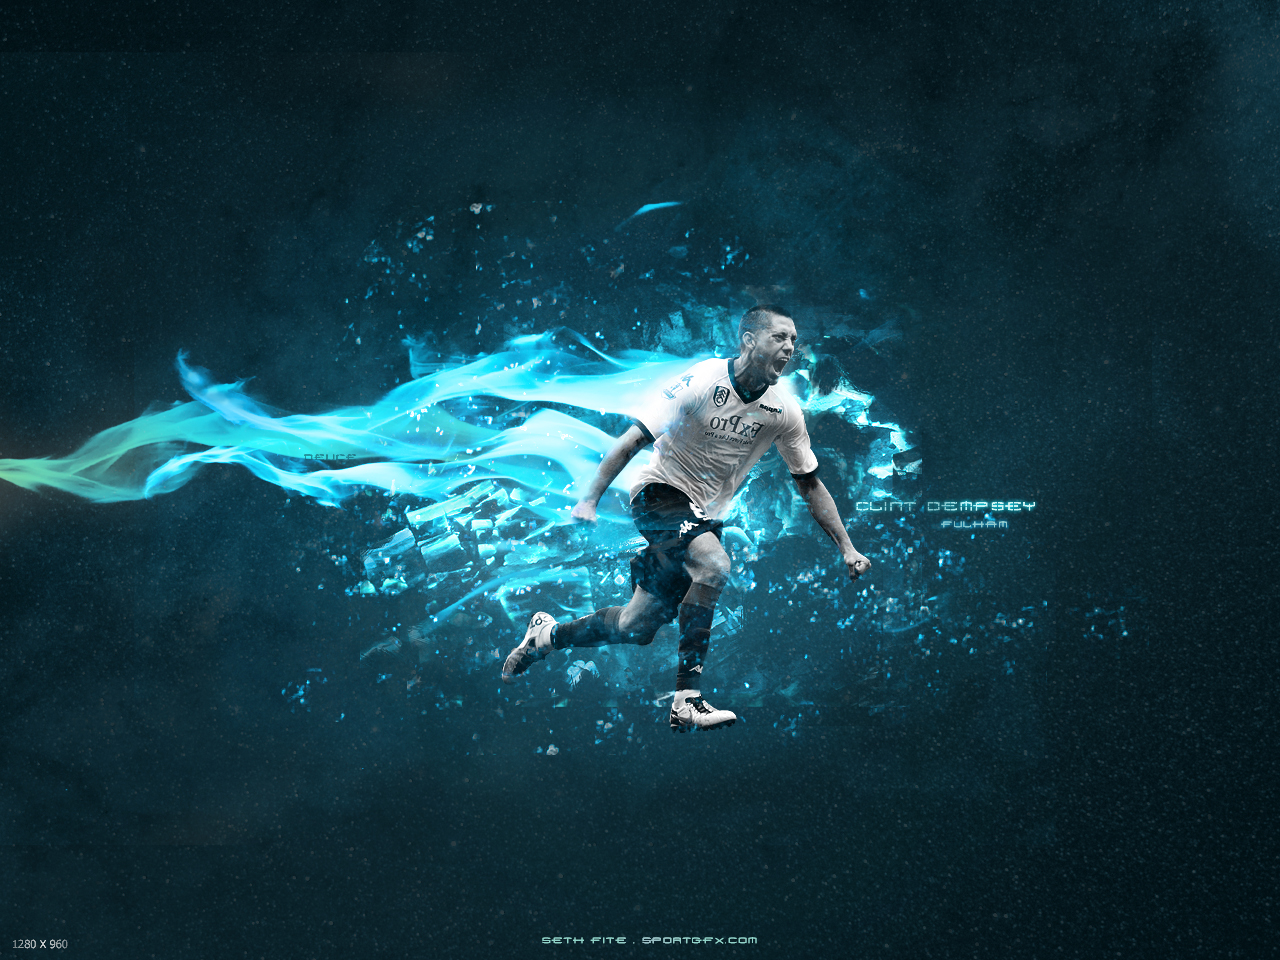 clint dempsey wallpapers | Football Clubs Wallpapers Best ...